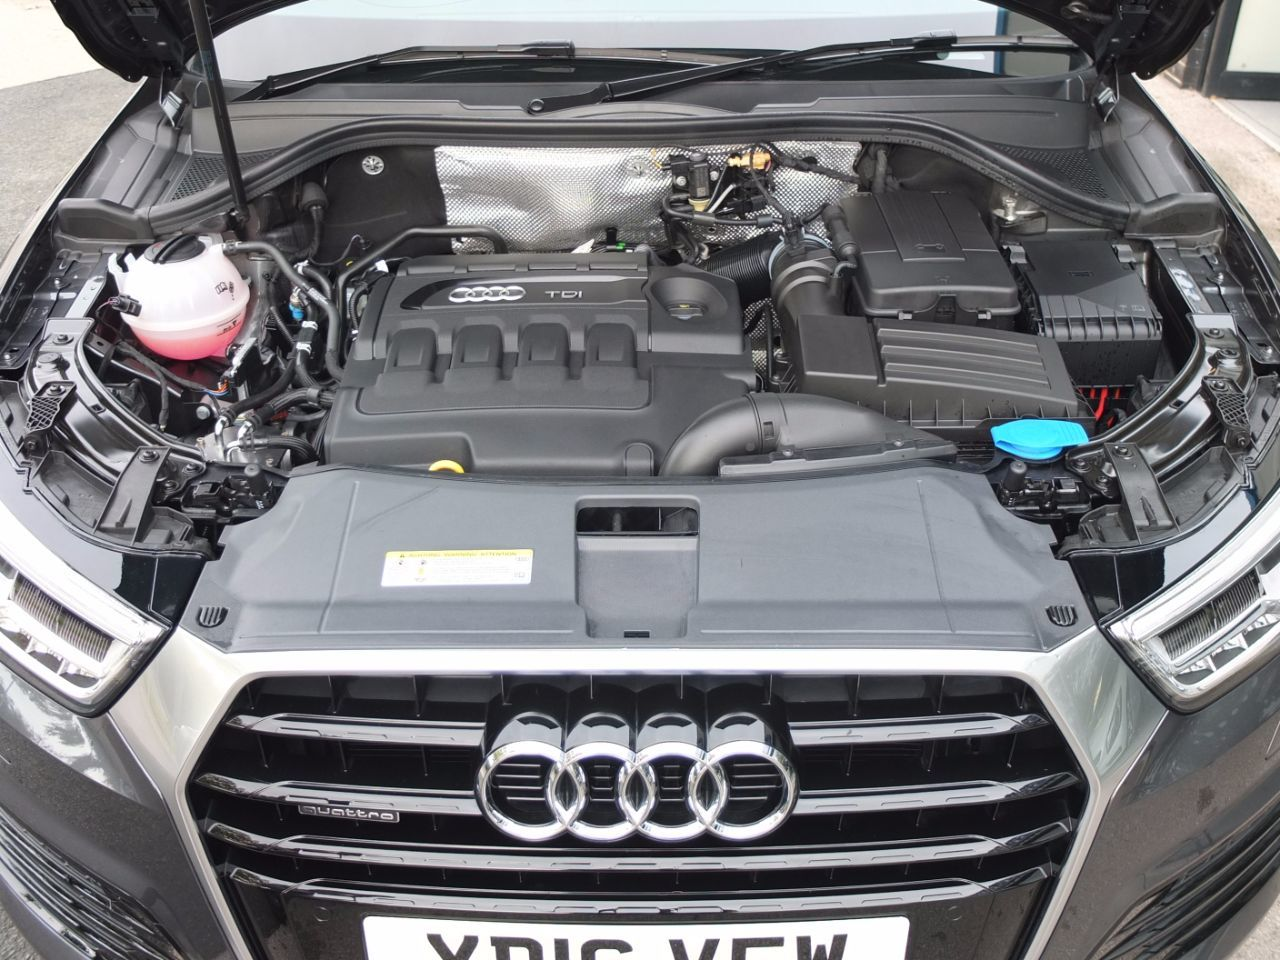 Audi Q3 2.0 TDI quattro S Line Plus S Tronic 150ps Estate Diesel Daytona Grey Metallic